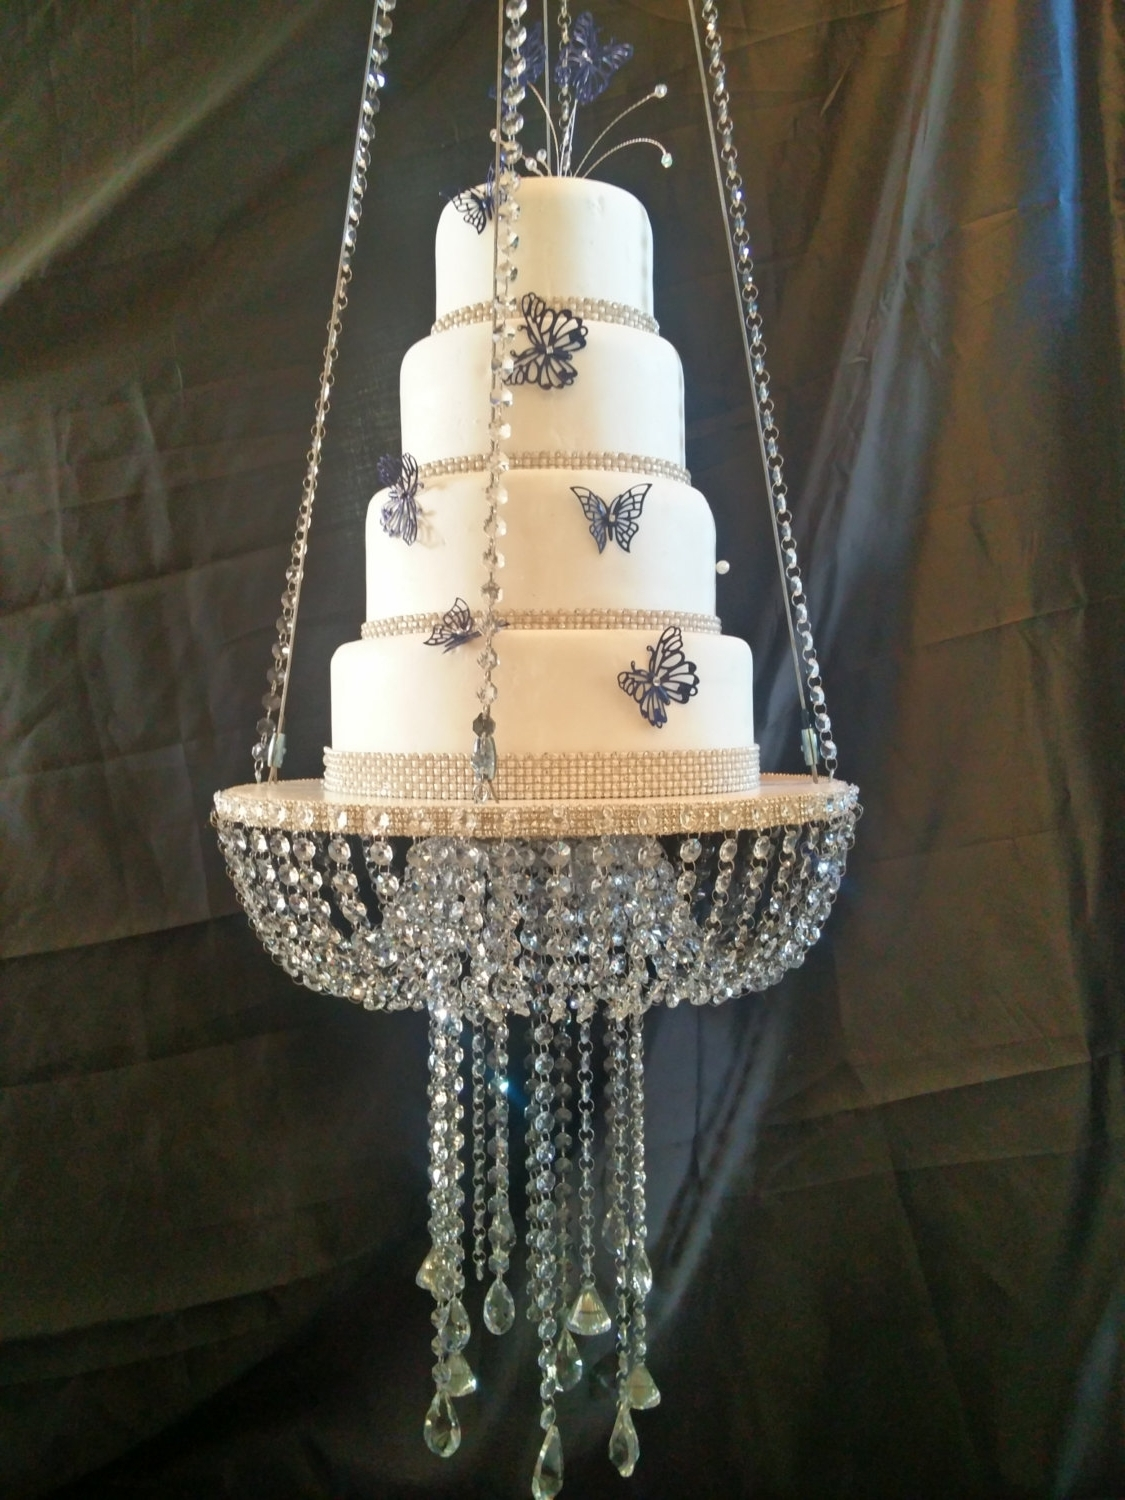 Favorite Sparkly Chandeliers With Chandelier: Astonishing Faux Crystal Chandeliers Party Chandelier (View 14 of 15)